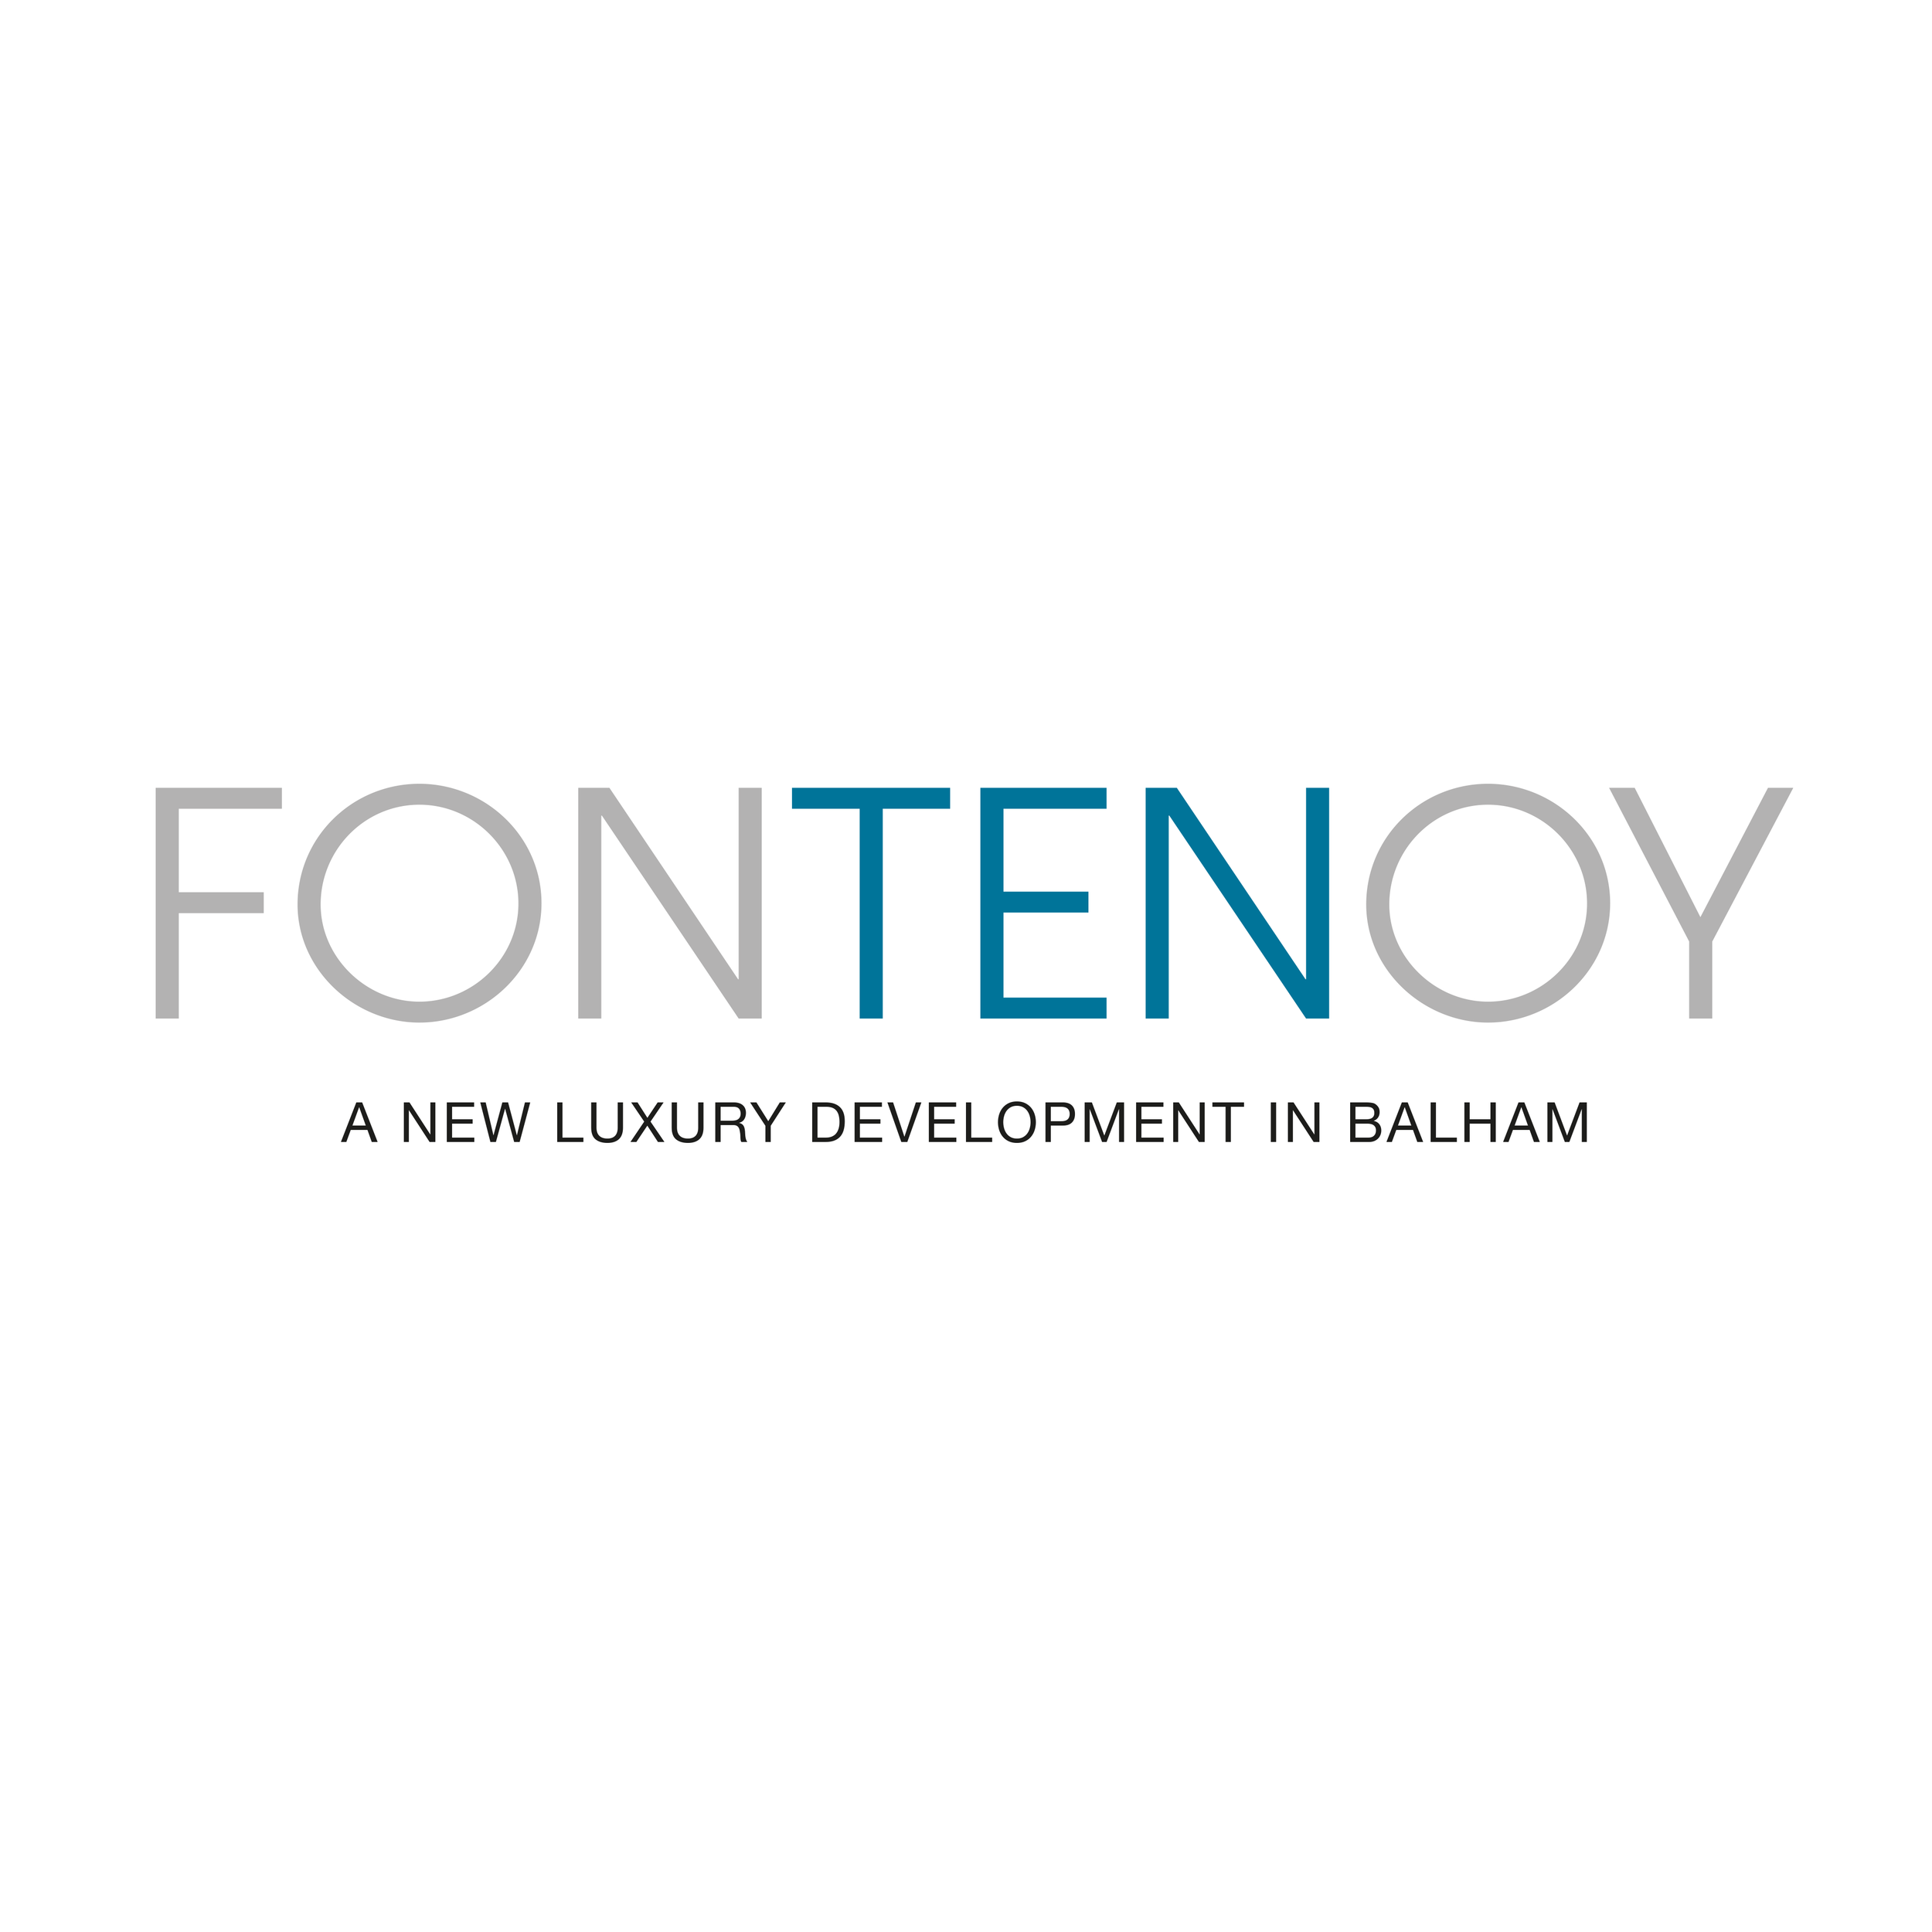 TEN FONTENOY LUXURY APARTMENTS